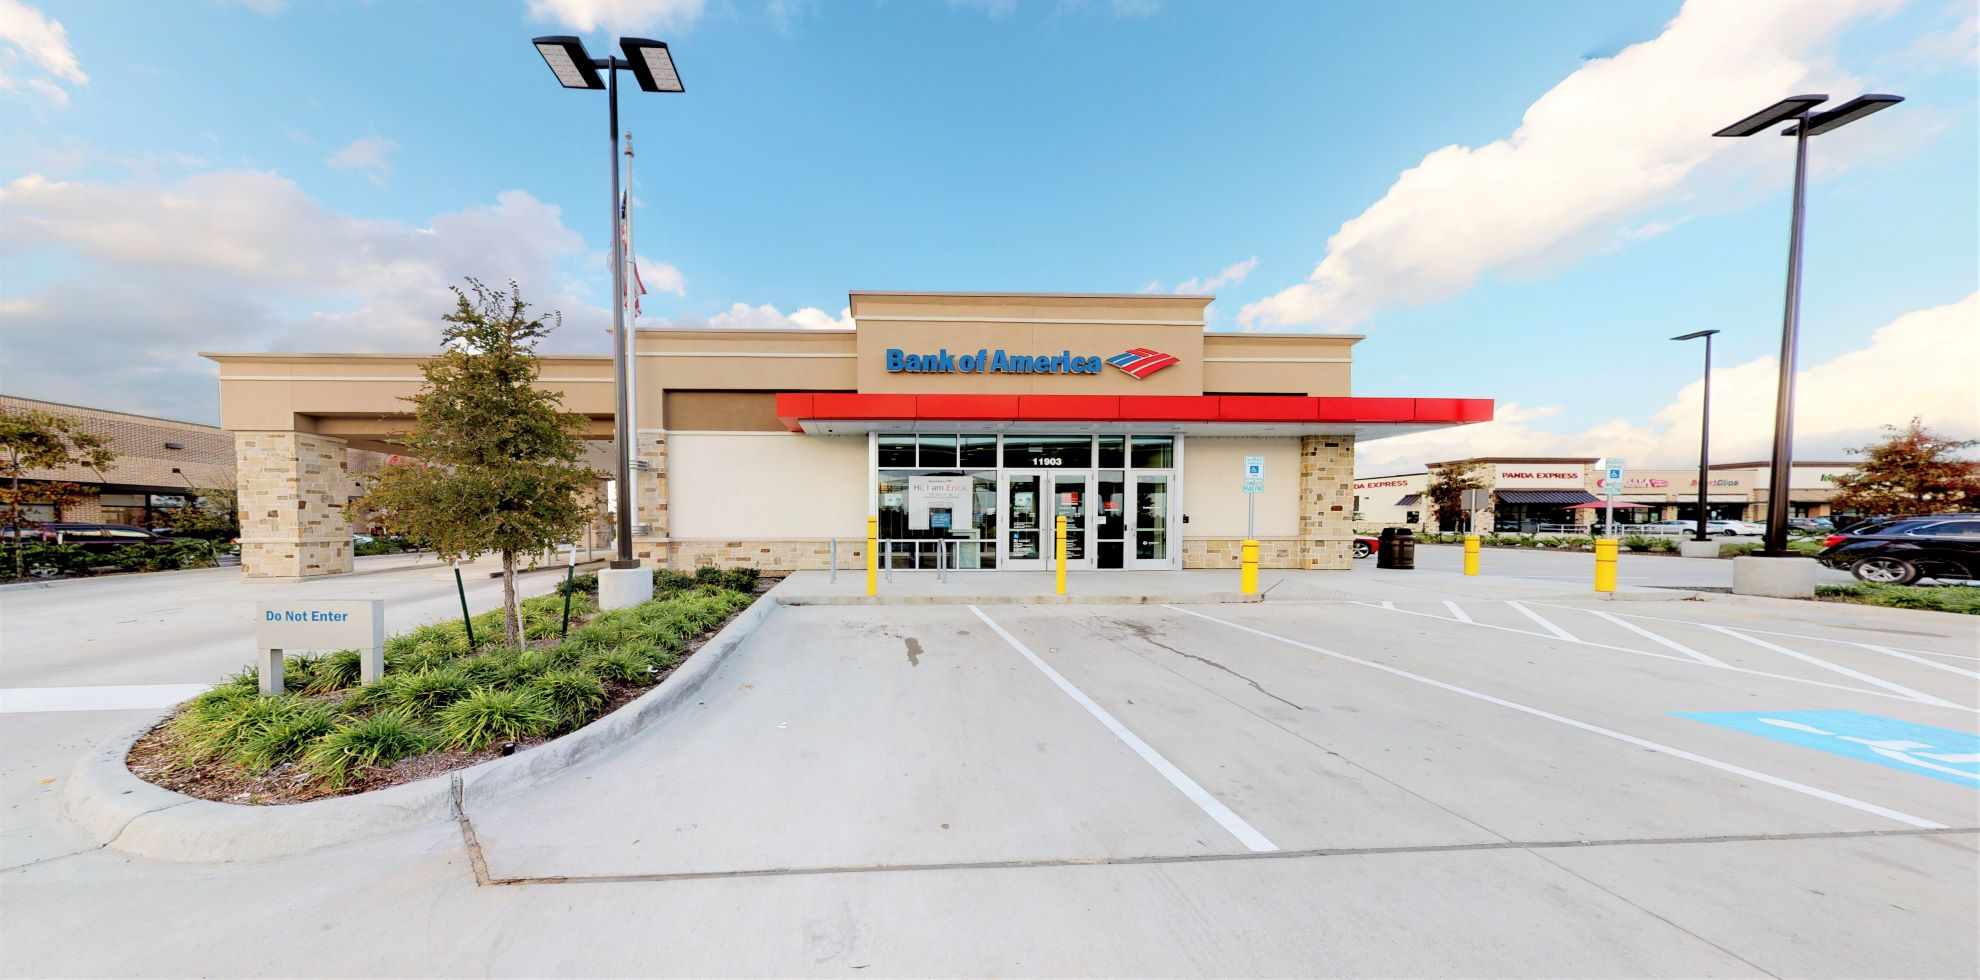 Bank of America financial center with drive-thru ATM | 11903 N Grand Pkwy E, New Caney, TX 77357